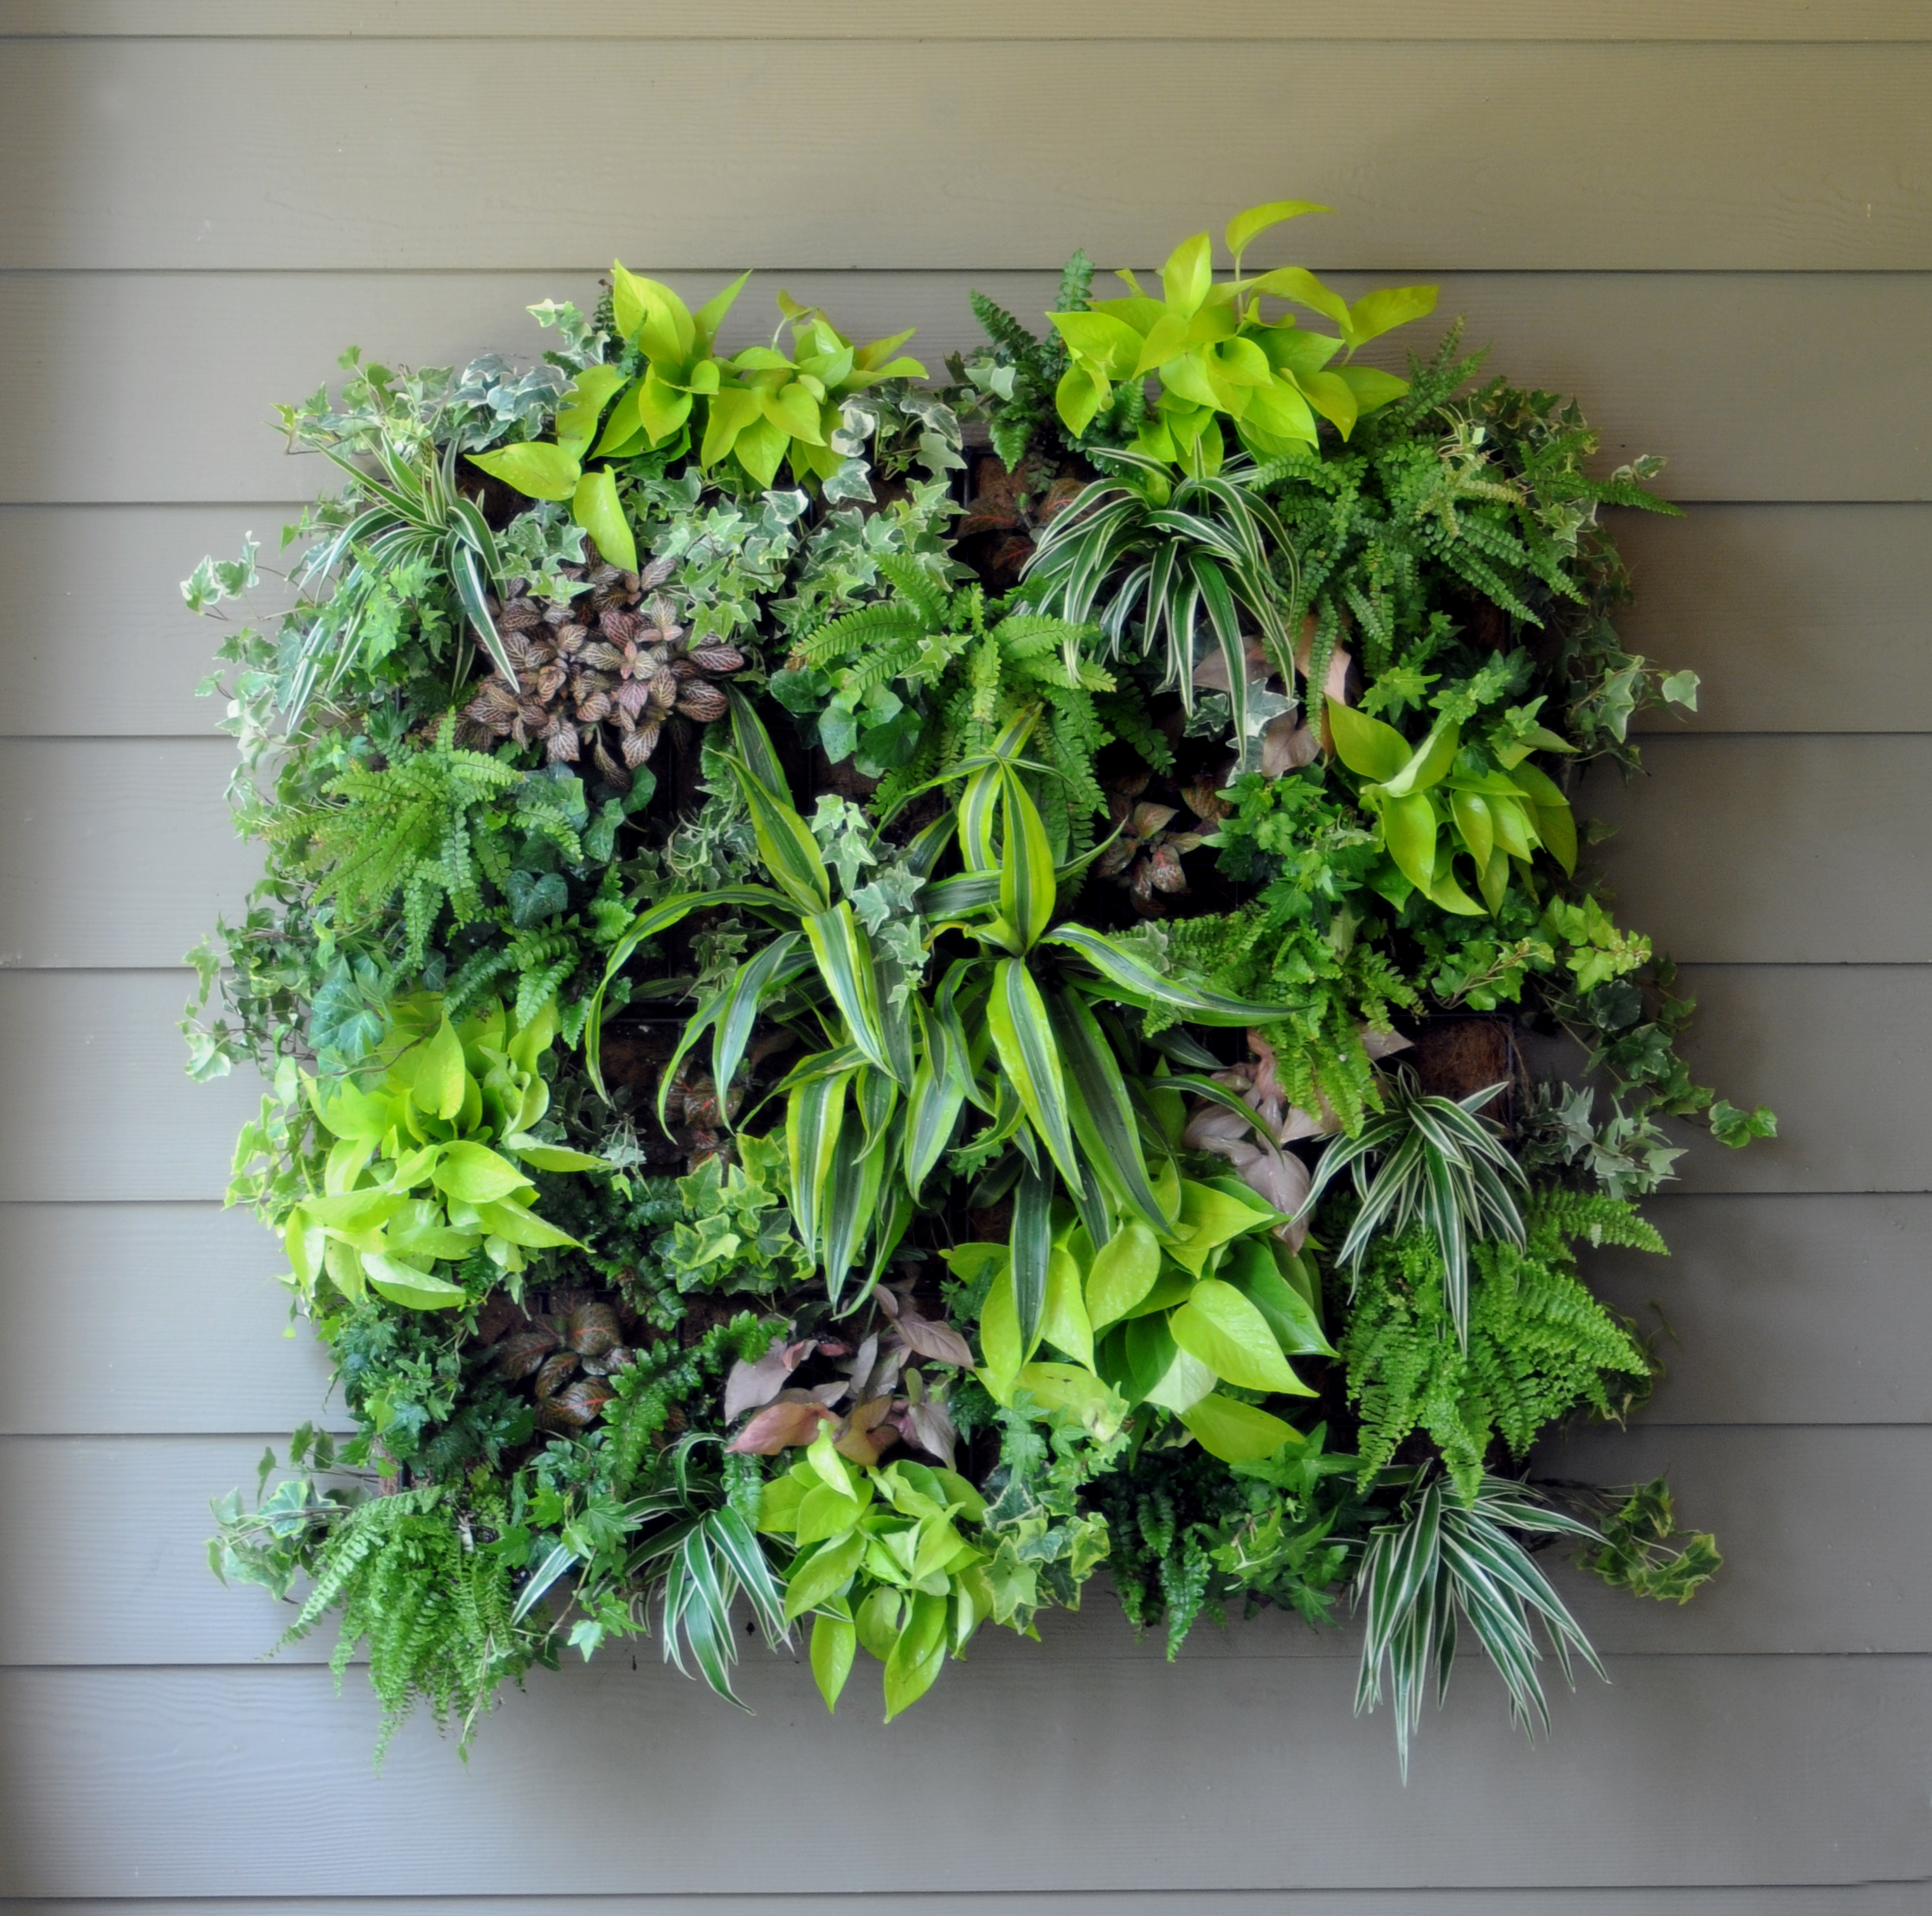 m wall pinteres at planters s planter outdoor wallter pin